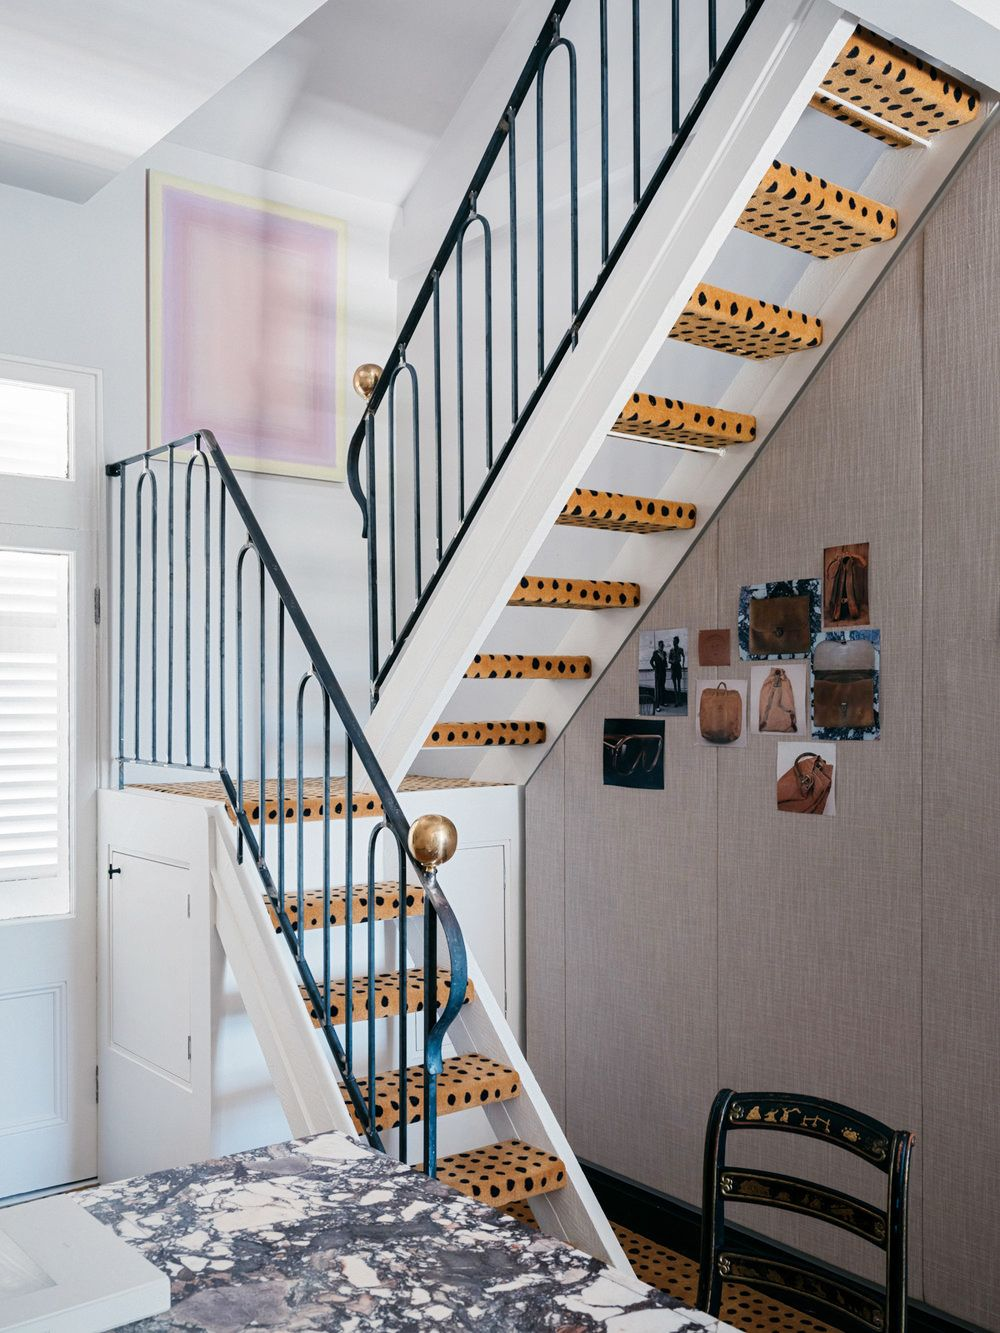 25 Unique Stair Designs - Beautiful Stair Ideas for Your House